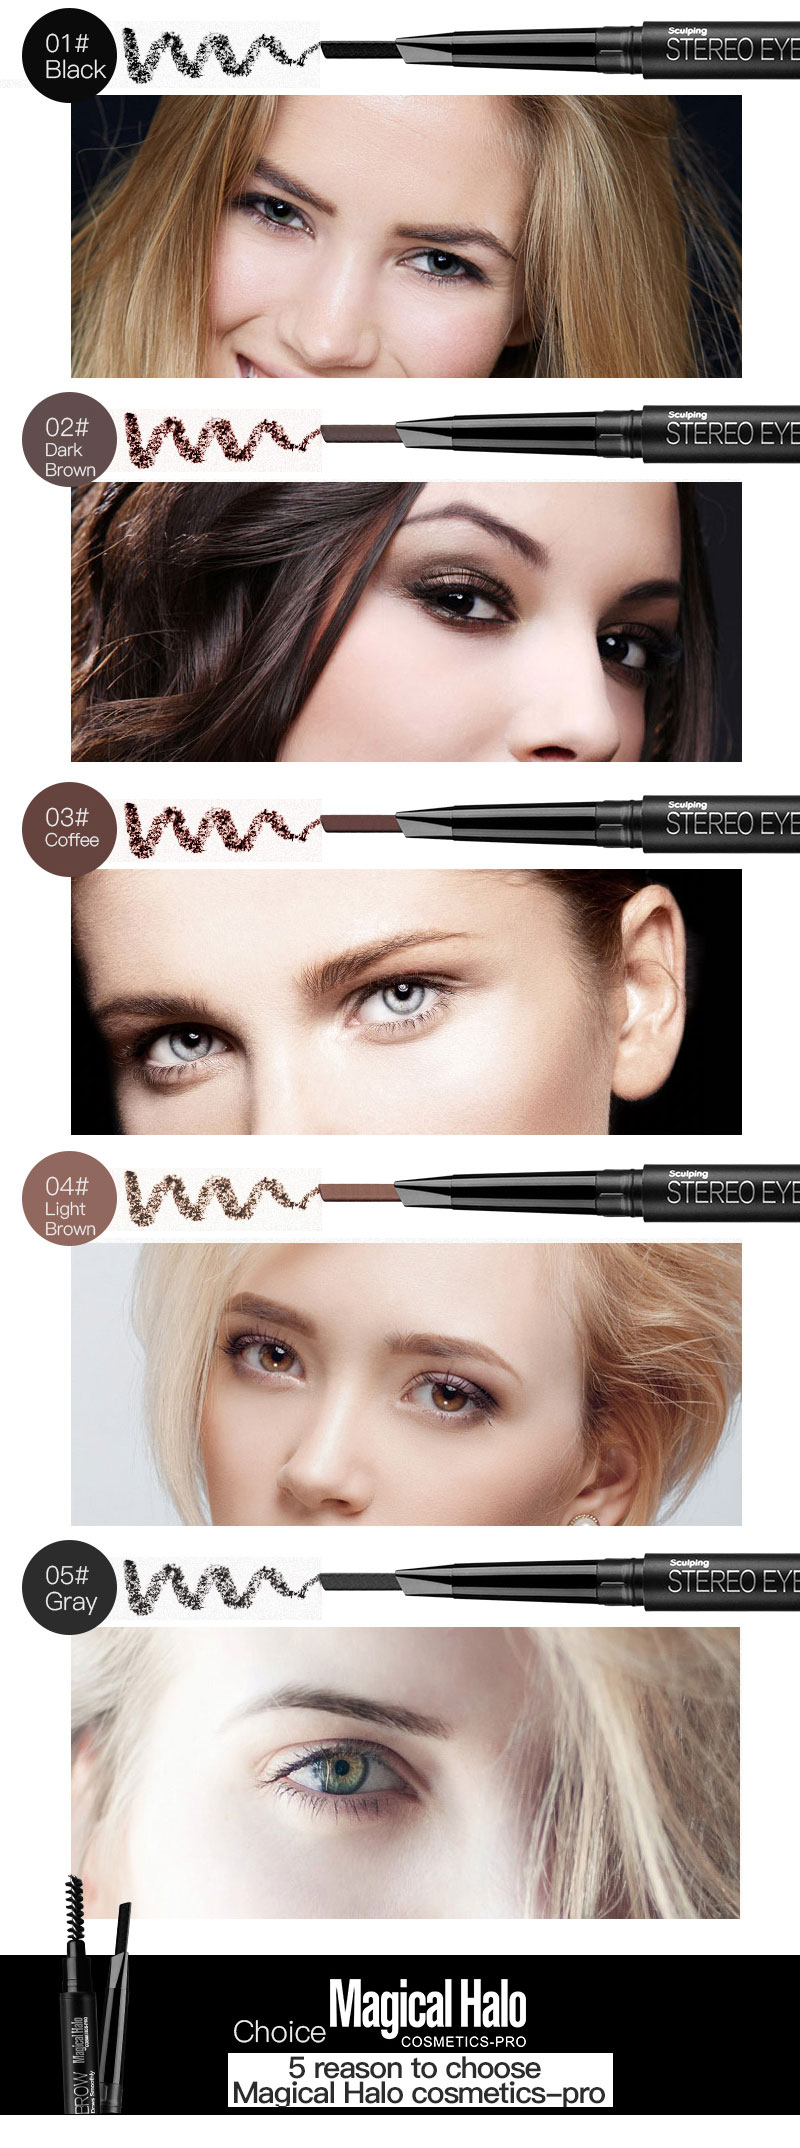 Magica Halo Automatic Eyebrow Pencil Paint for Eyebrow Shadow with Brushes Professional Black Grey Waterproof Eyebrow Pencil 3